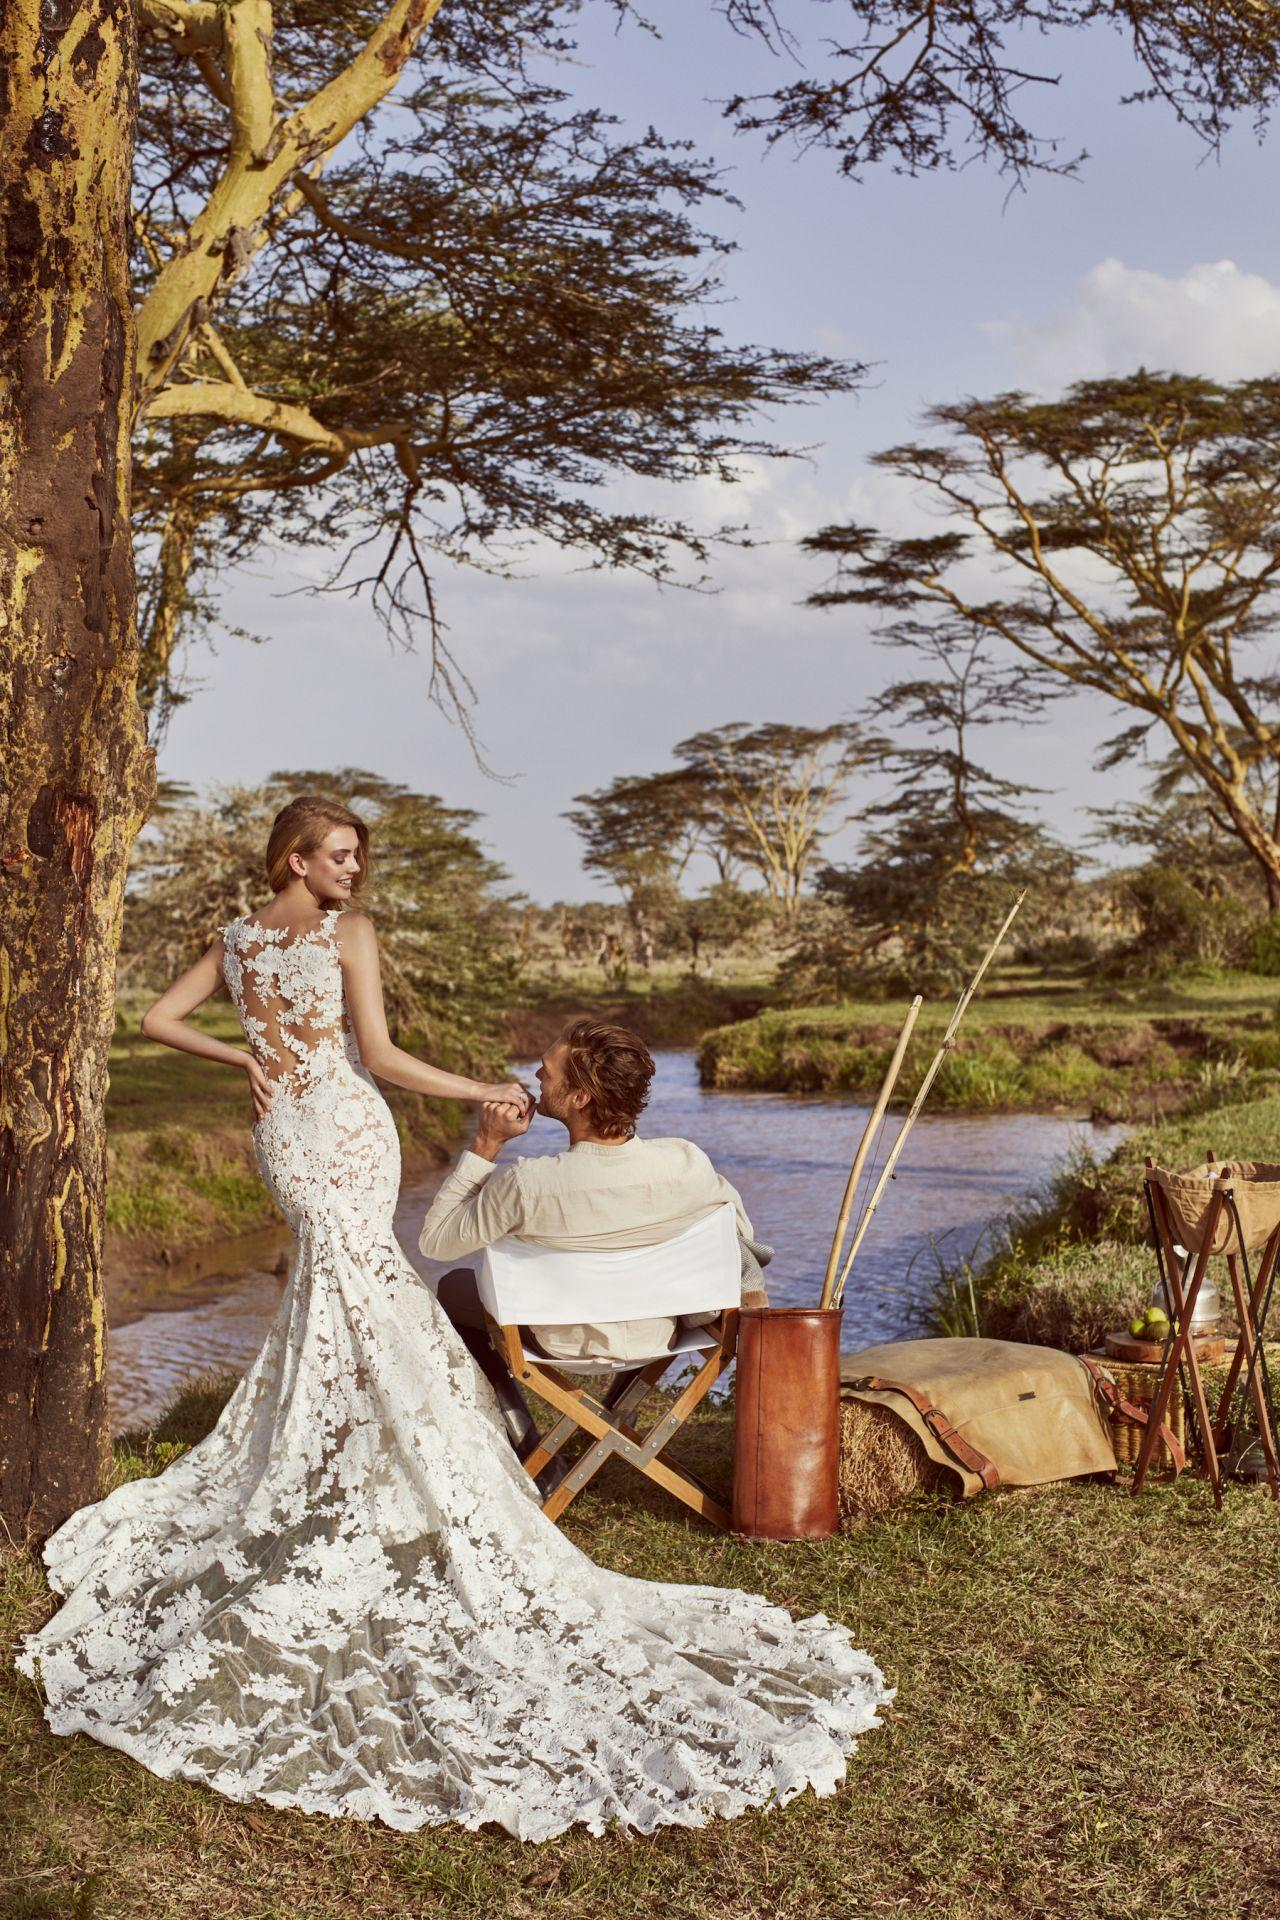 Wild Love in Esat Africa_PRONOVIAS_RUA